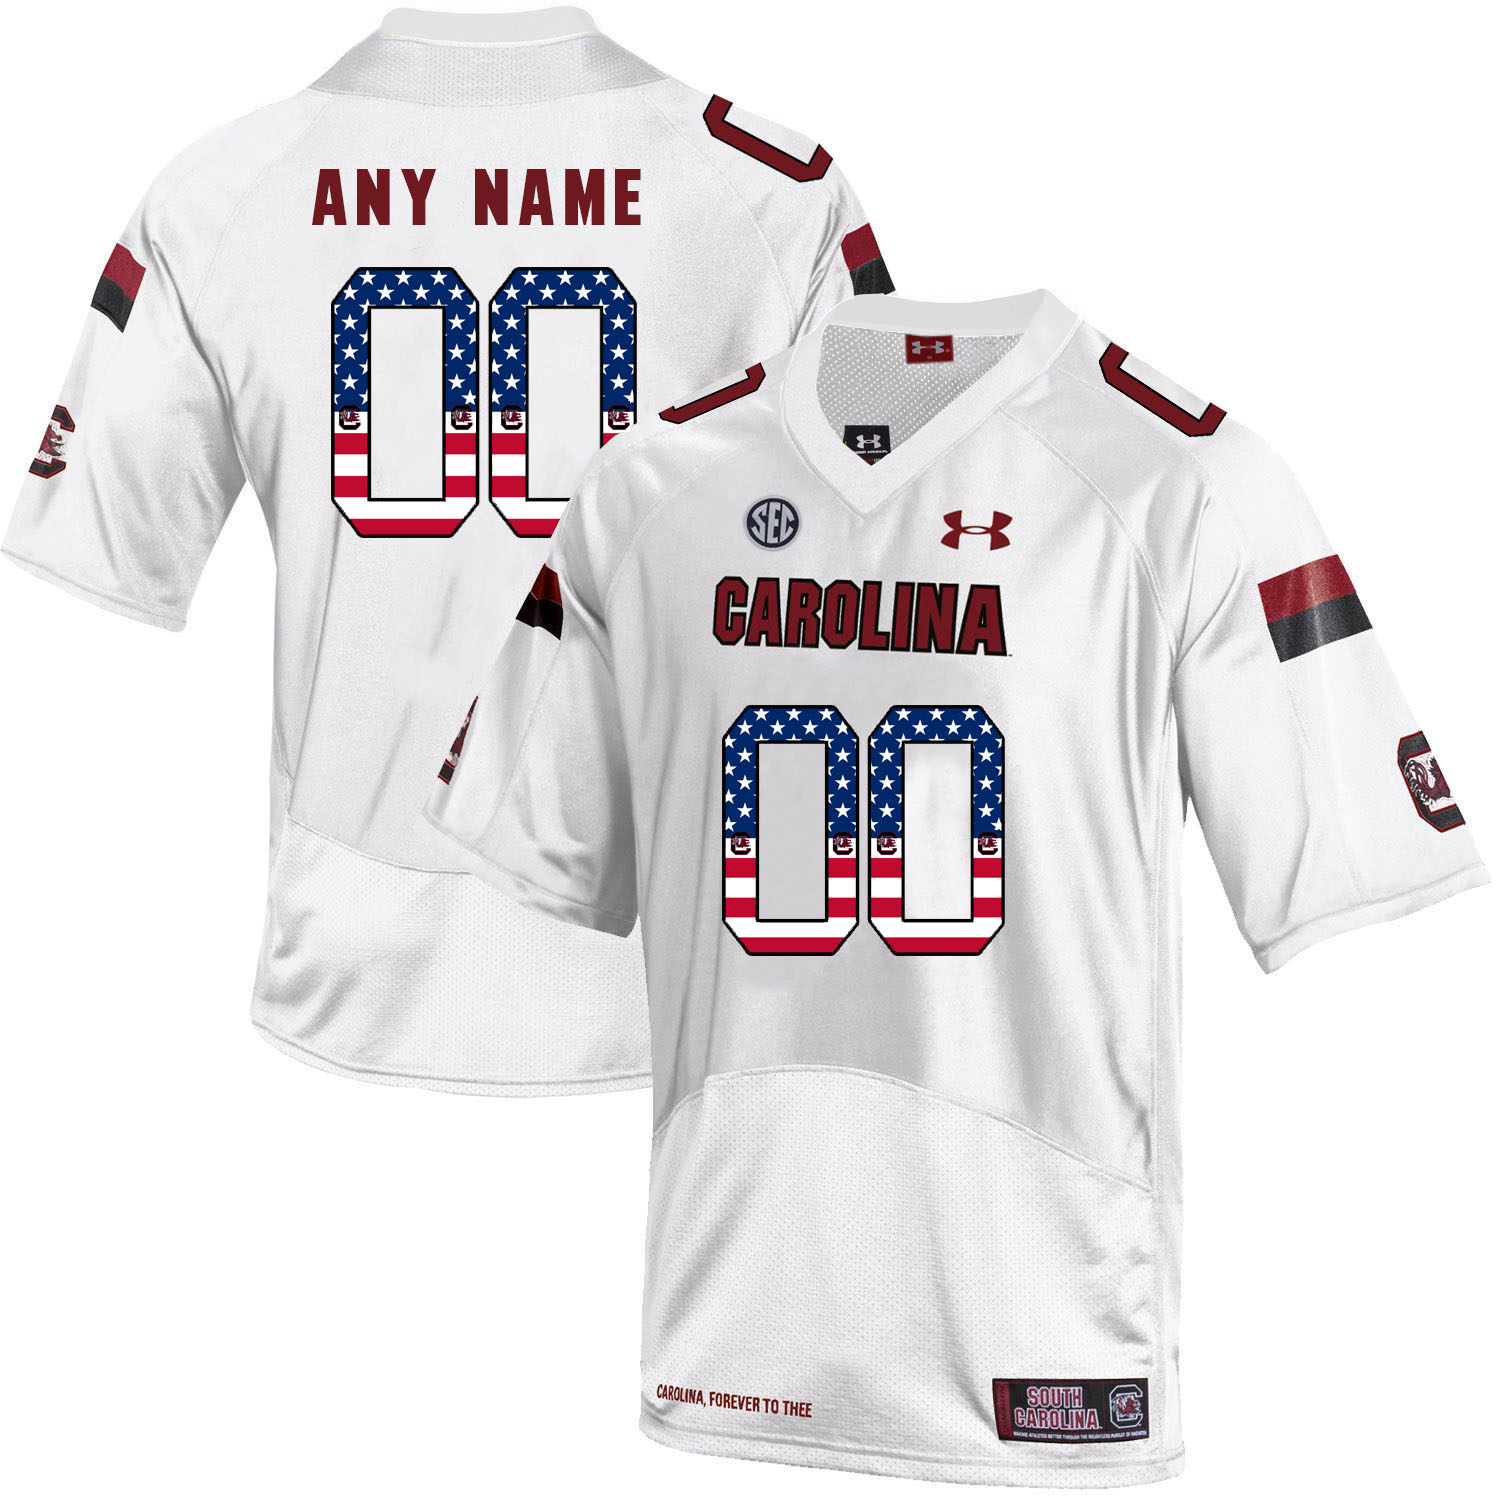 South Carolina Gamecocks White Customized USA Flag College Football Jersey